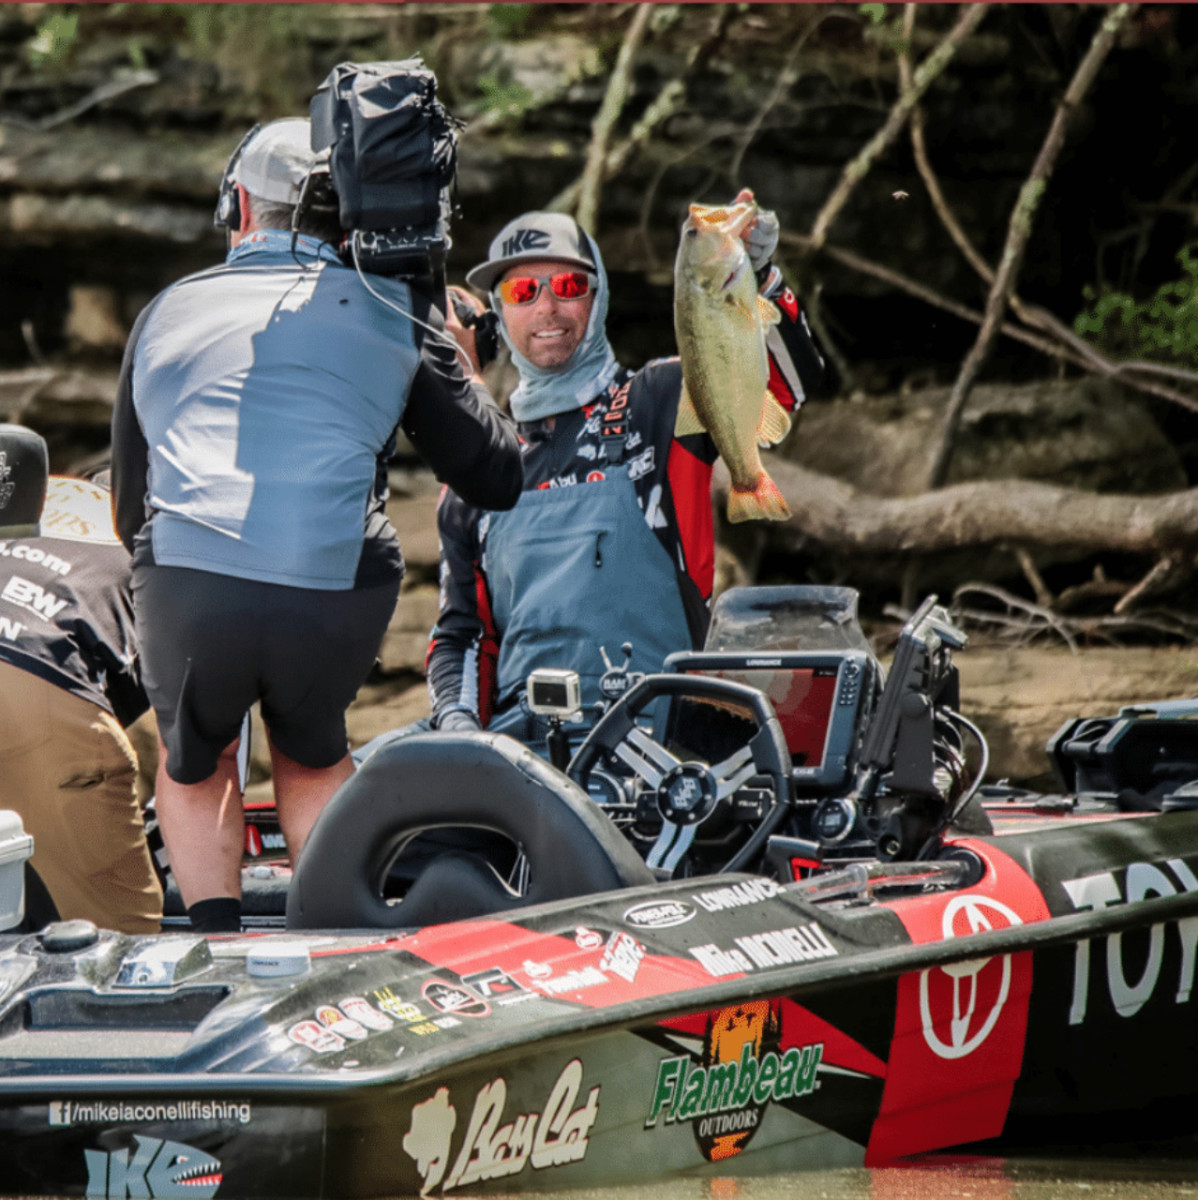 FLW will combine the biggest bass fishing style with MLF's approach of immediate release.